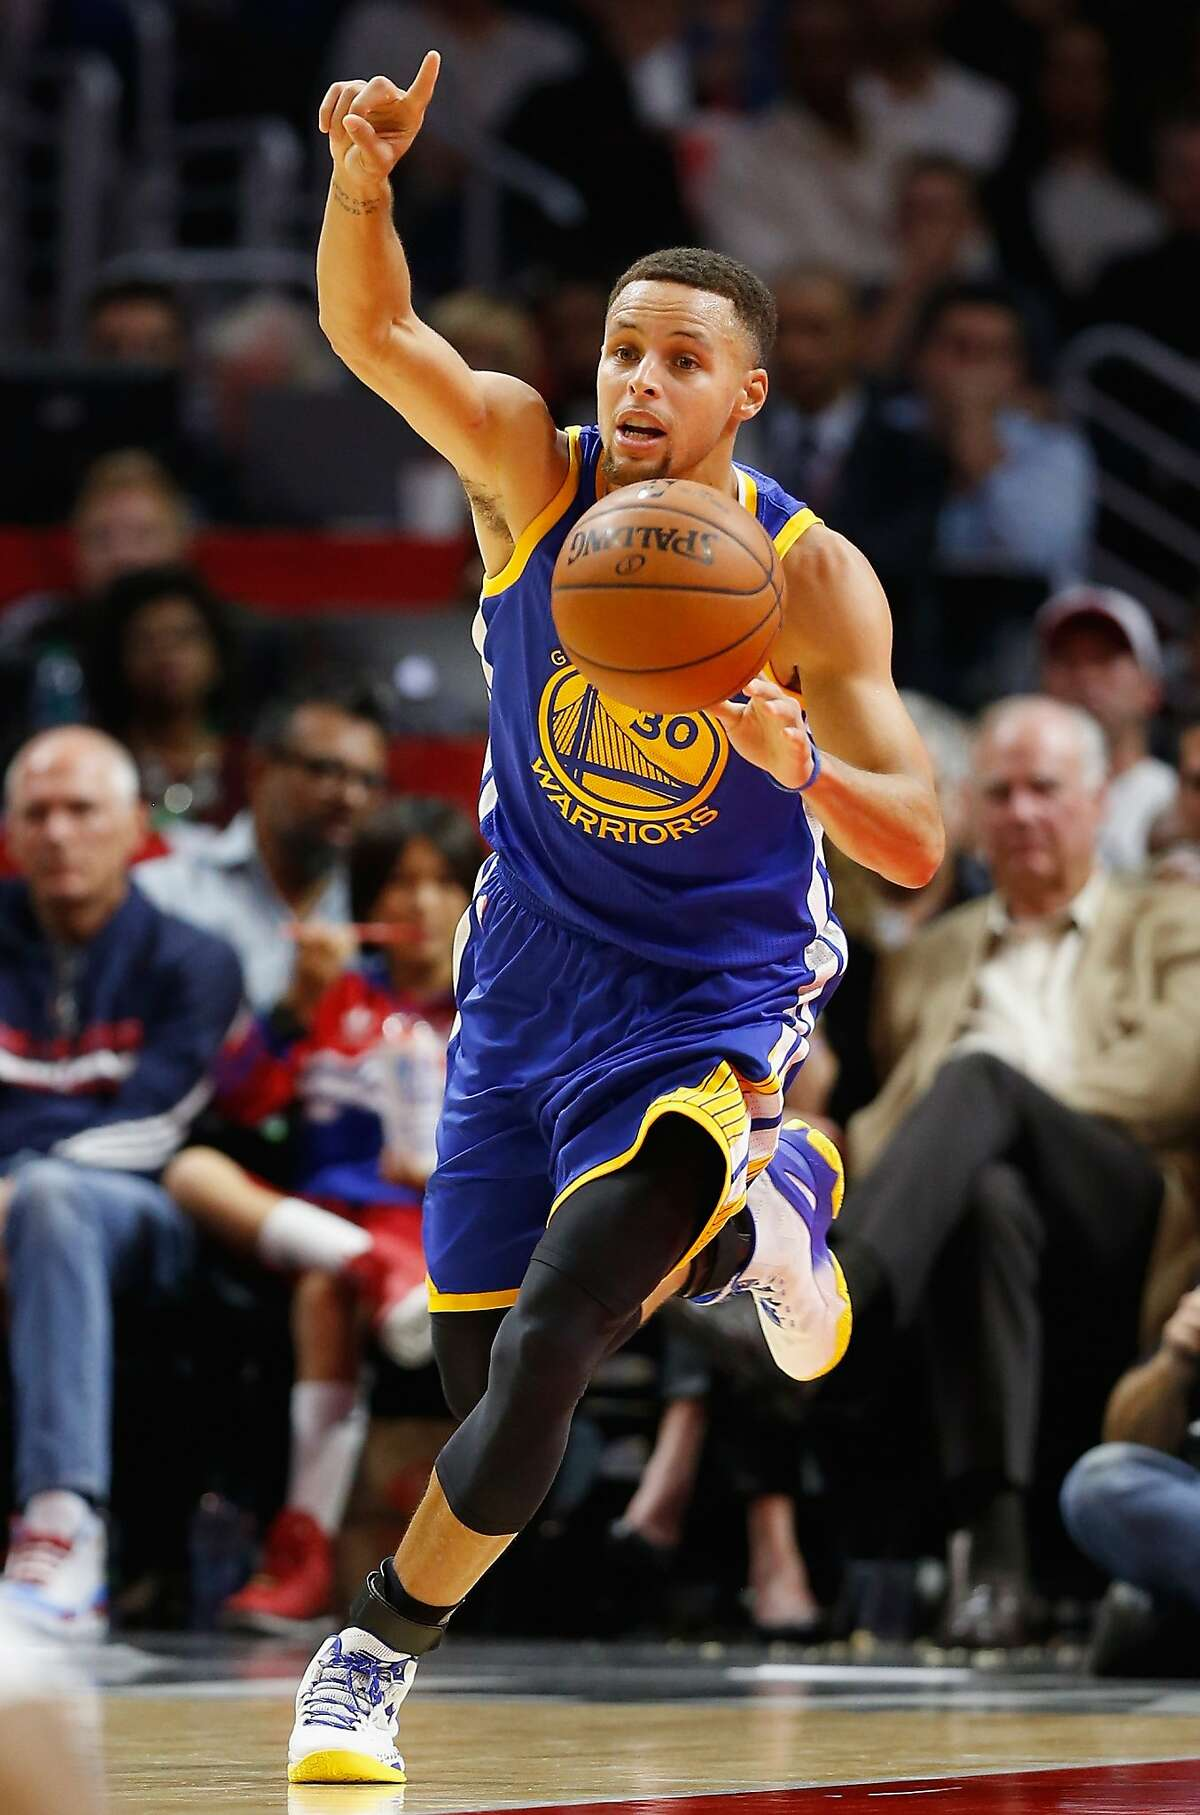 Stephen Curry of the Golden State Warriors dribbles the ball during the first half of a game at Staples Center on November 19, 2015 in Los Angeles, California.